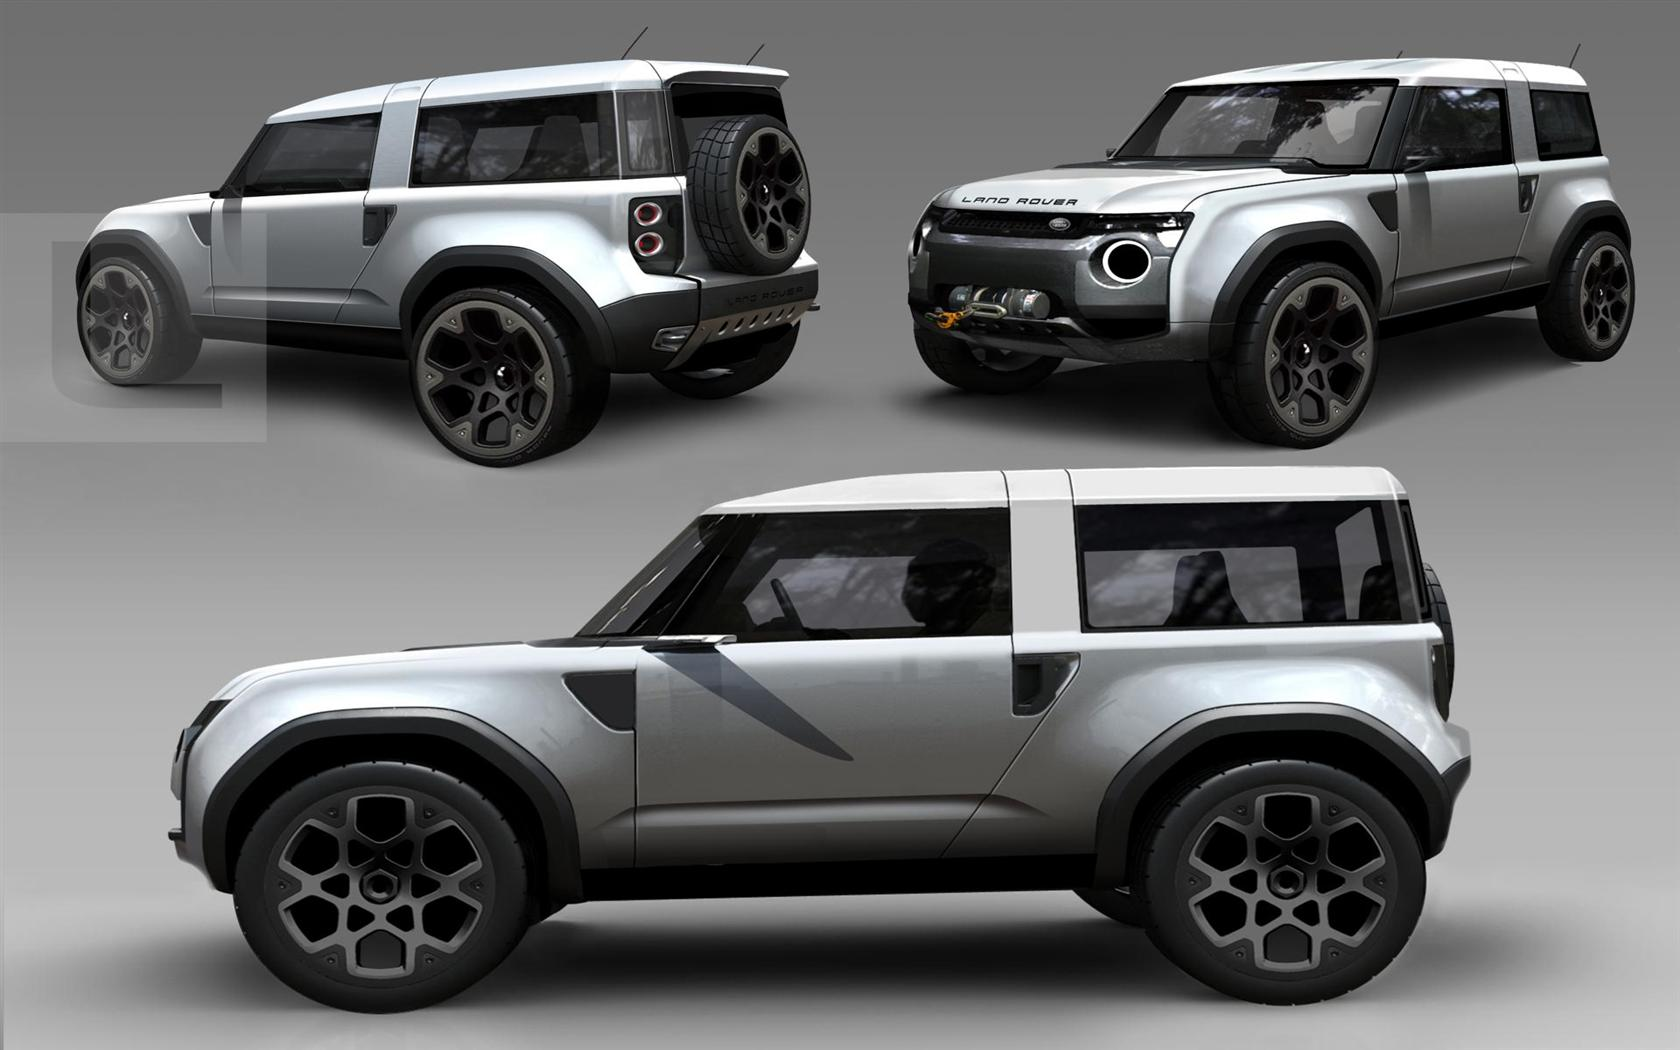 2012 Land Rover Dc100 Concept Image Photo 32 Of 43